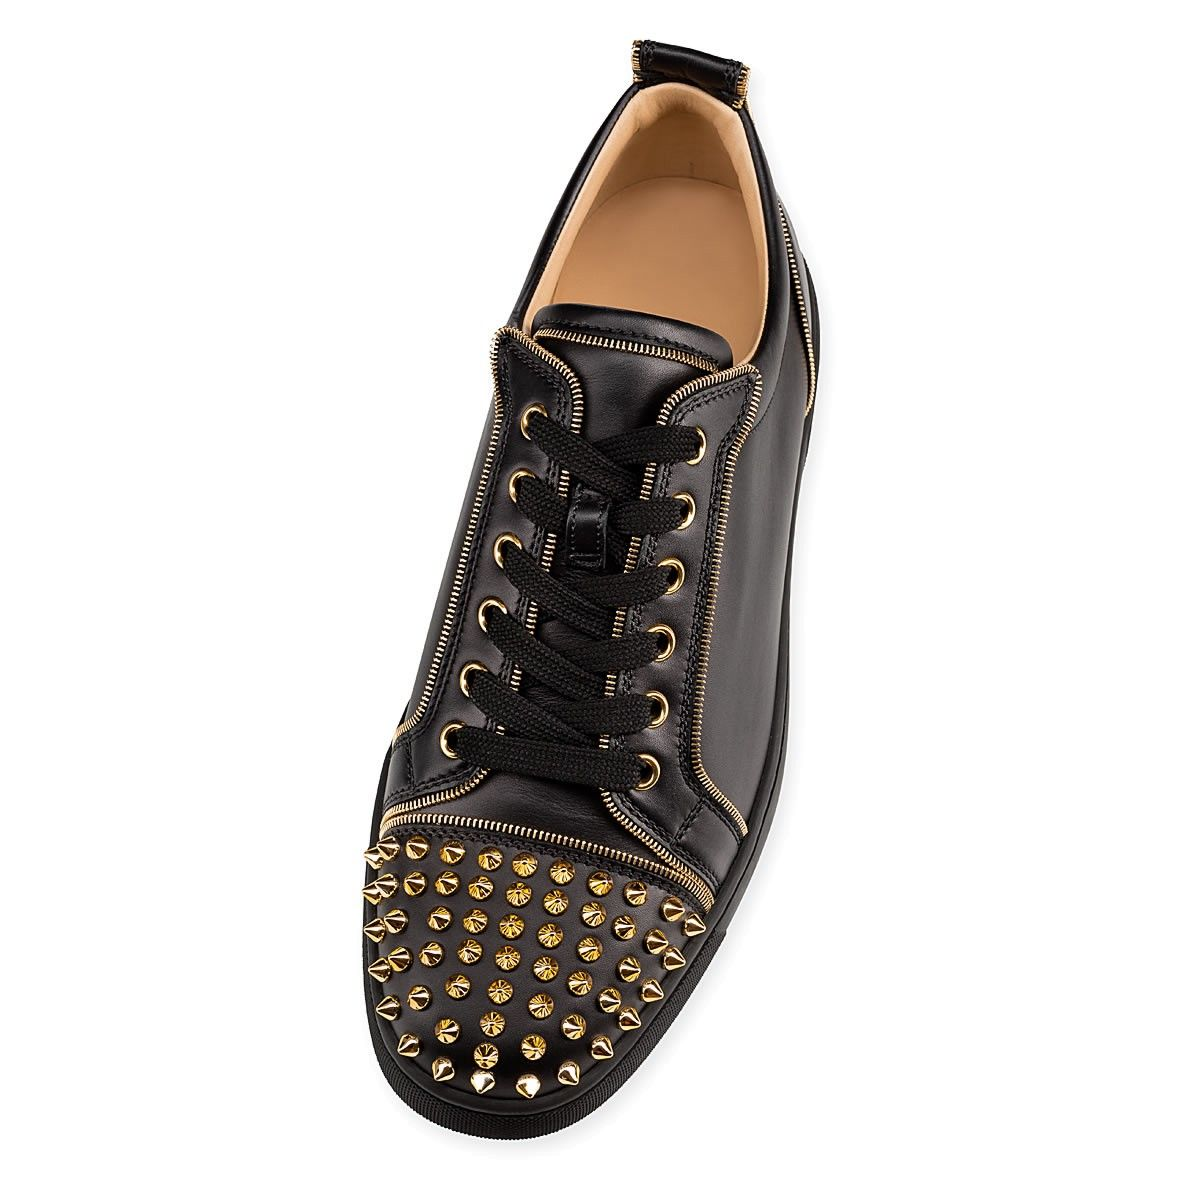 ed8442d1ac81 Souliers - Junior Zip Spikes Calf - Christian Louboutin